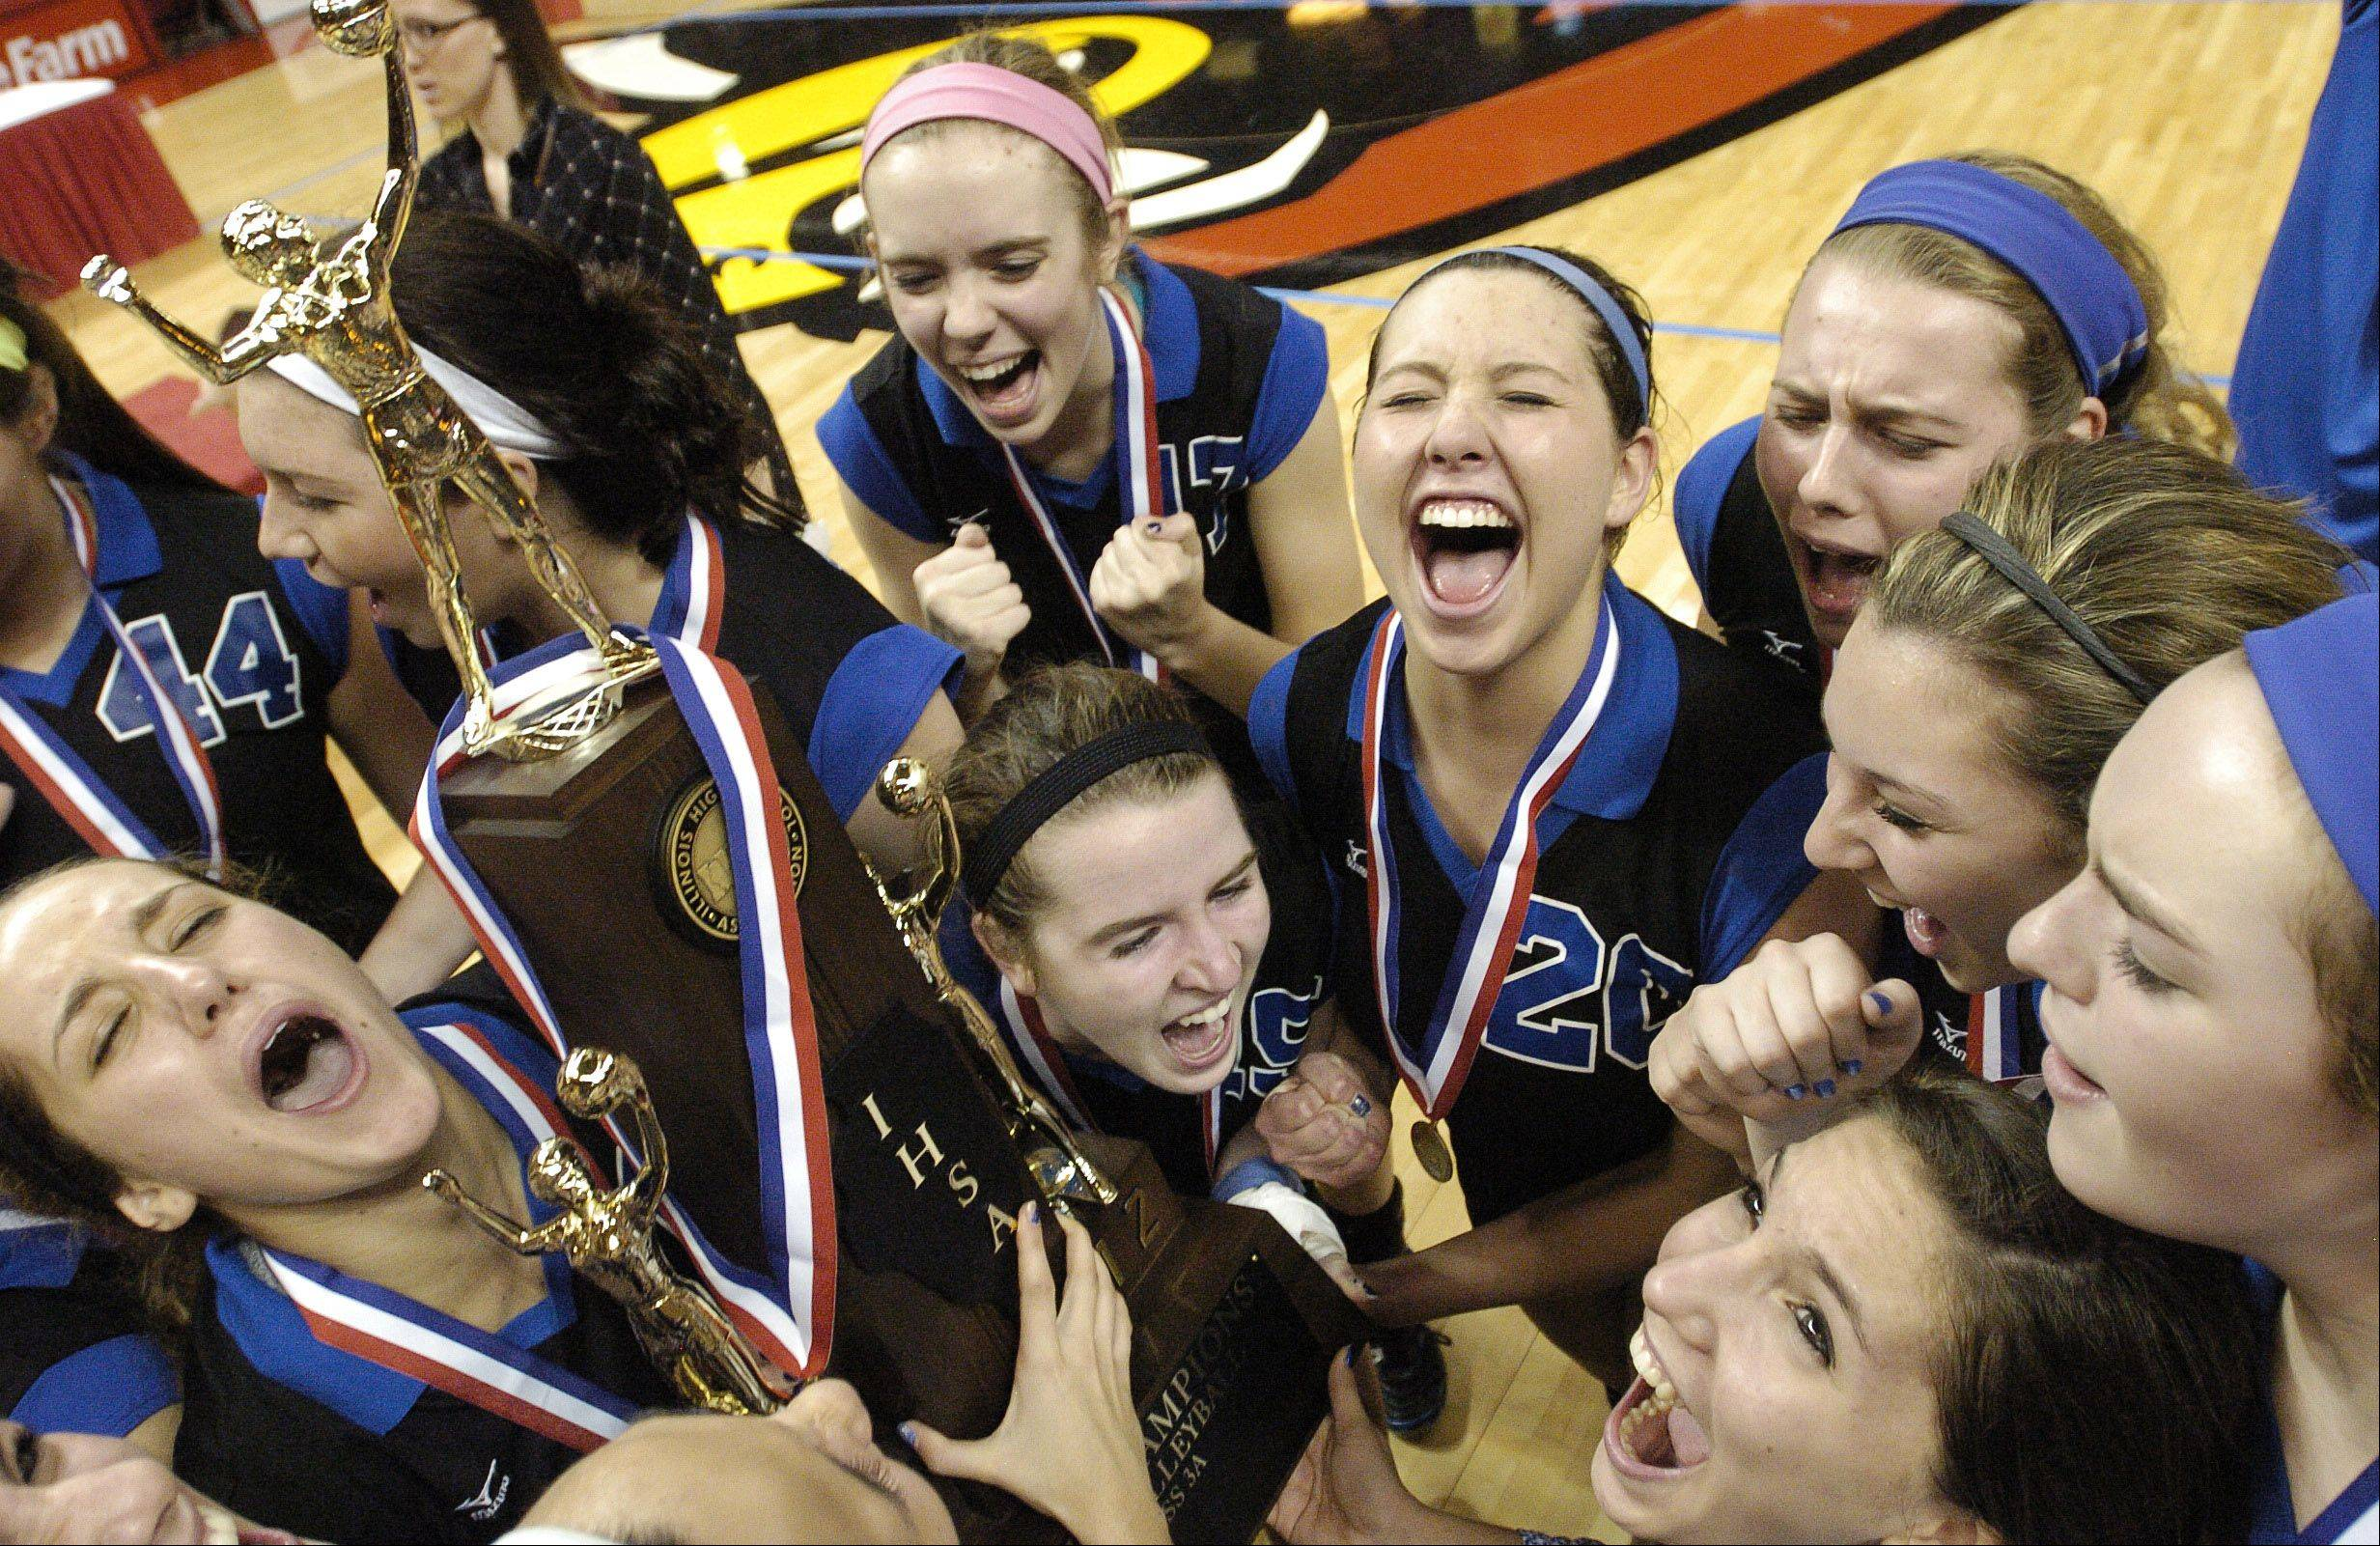 The St. Francis team reacts to their big win during the class 3A girls volleyball championship Saturday at Redbird Arena, on Illinois State campus in Bloomington-Normal.